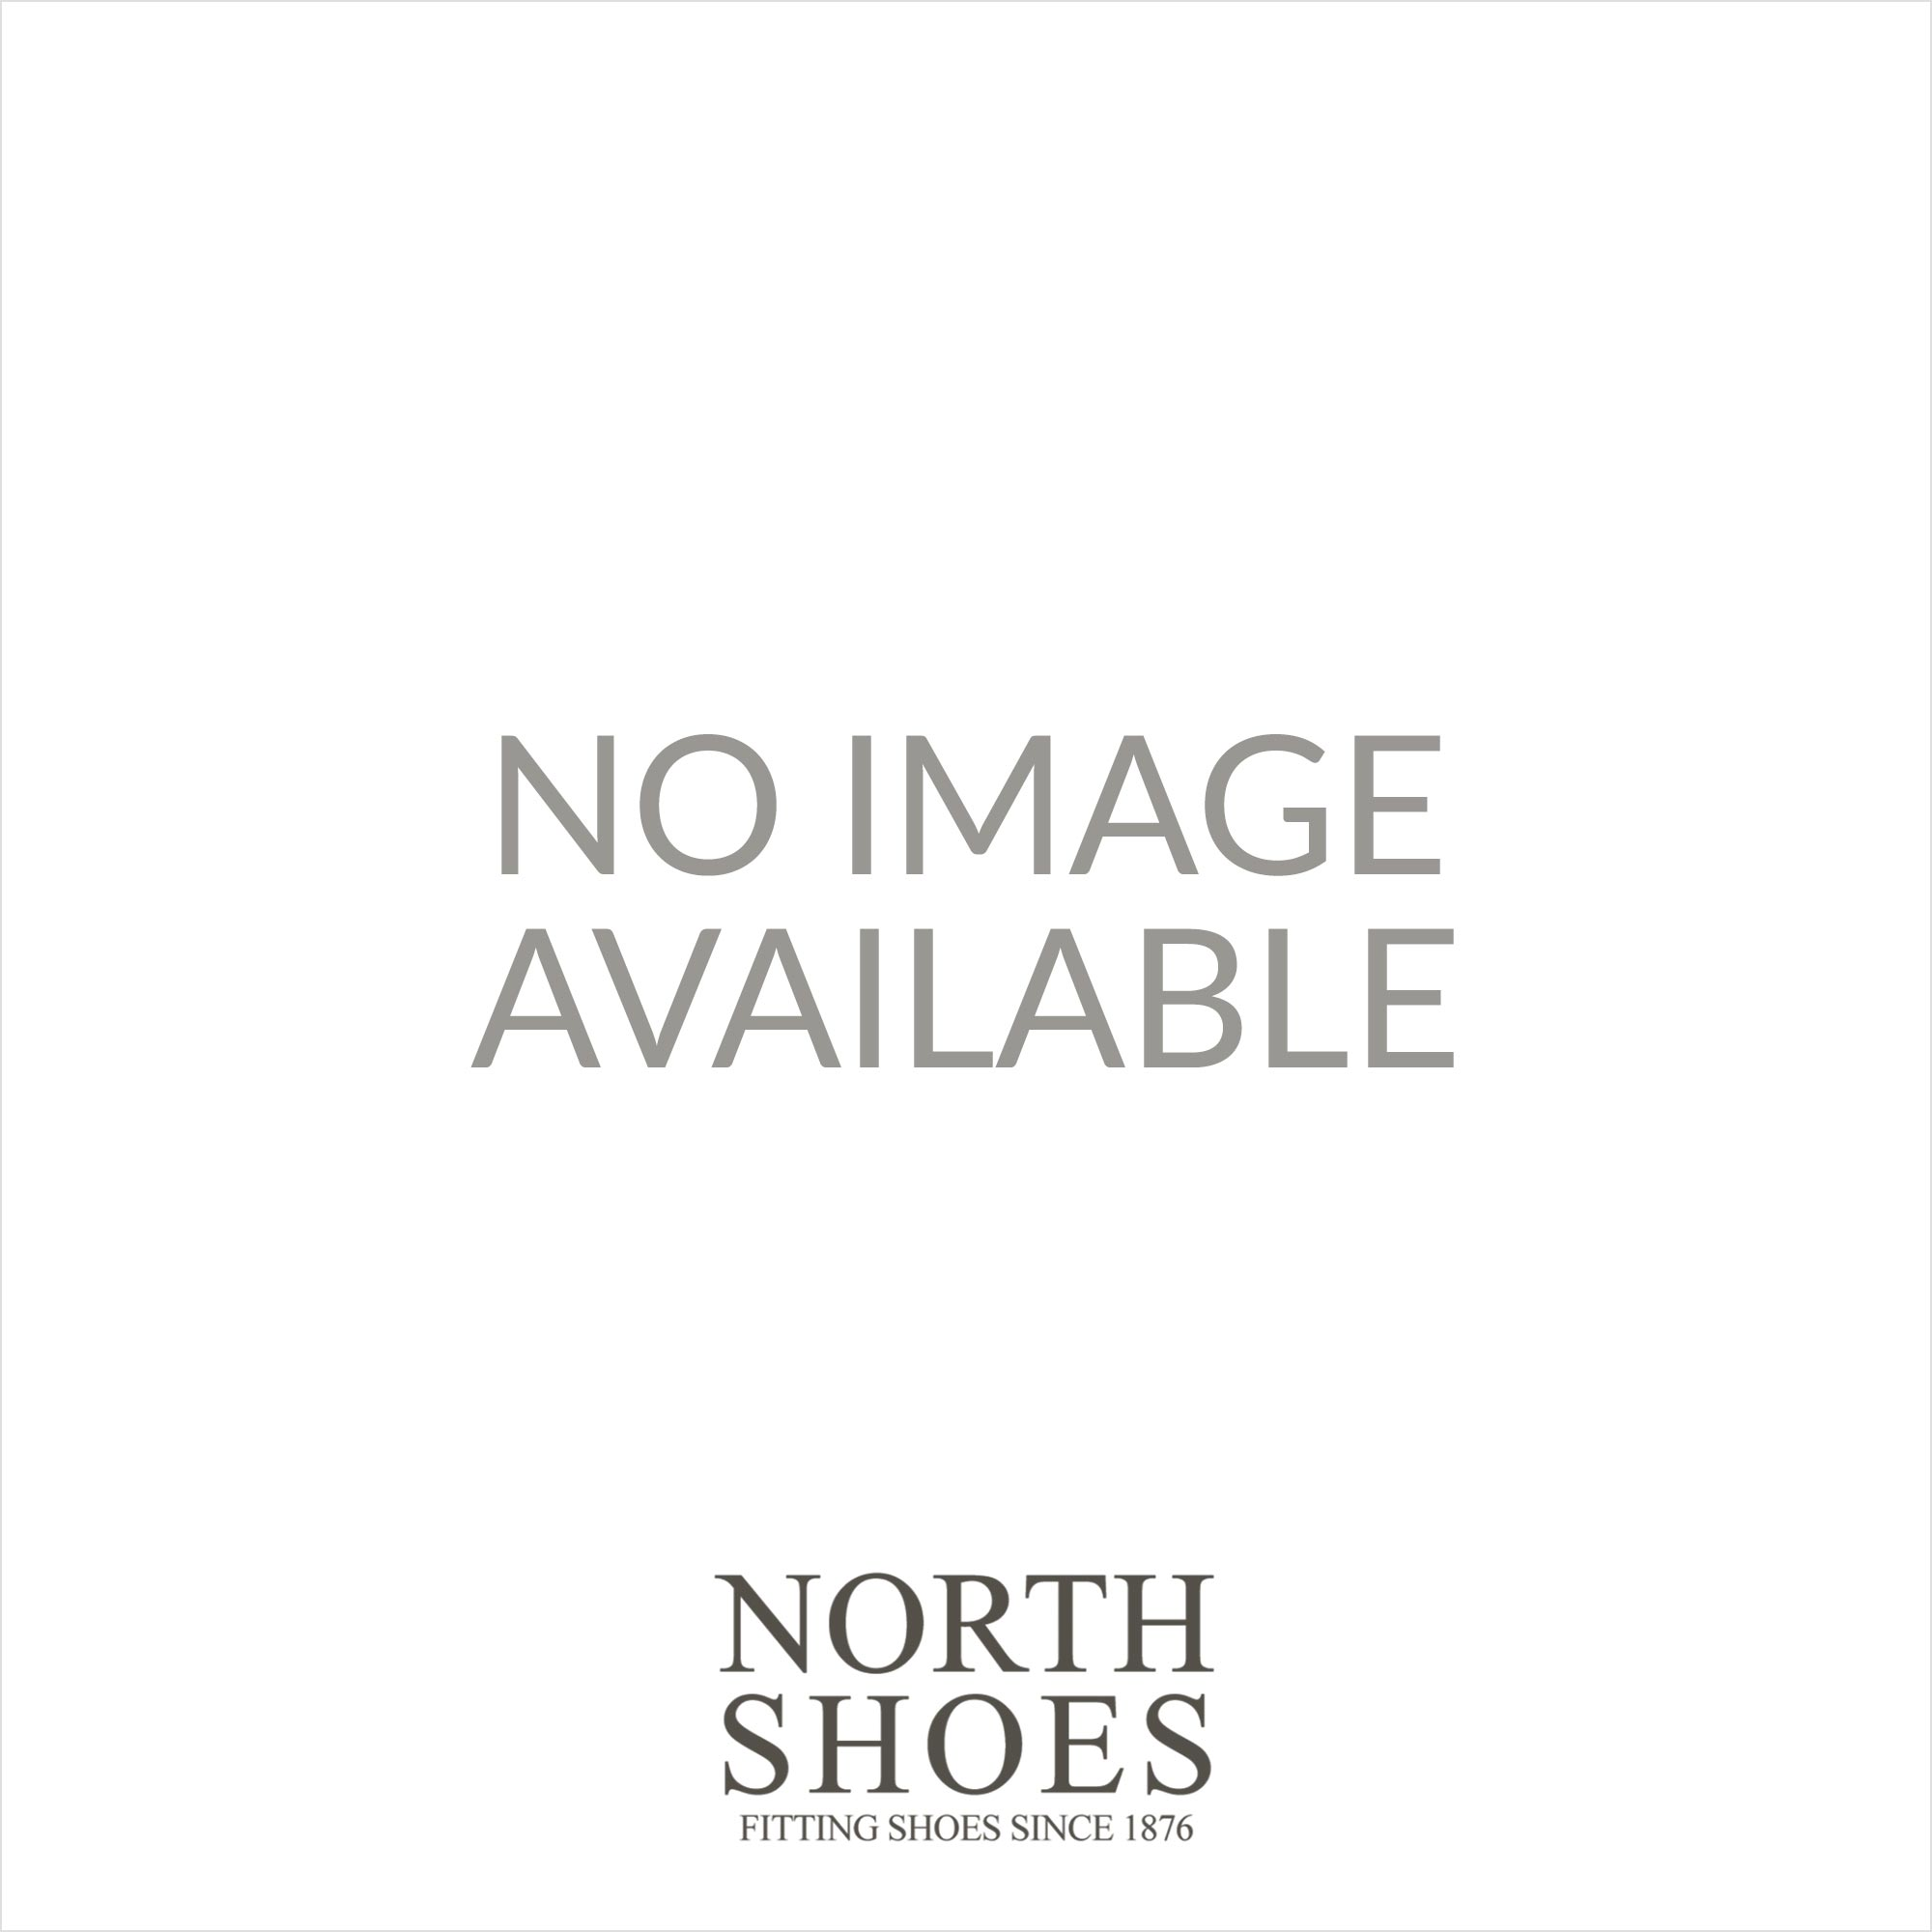 496023301001 Black Nubuck/Leather Womens Lace Up Casual Trainer Shoe